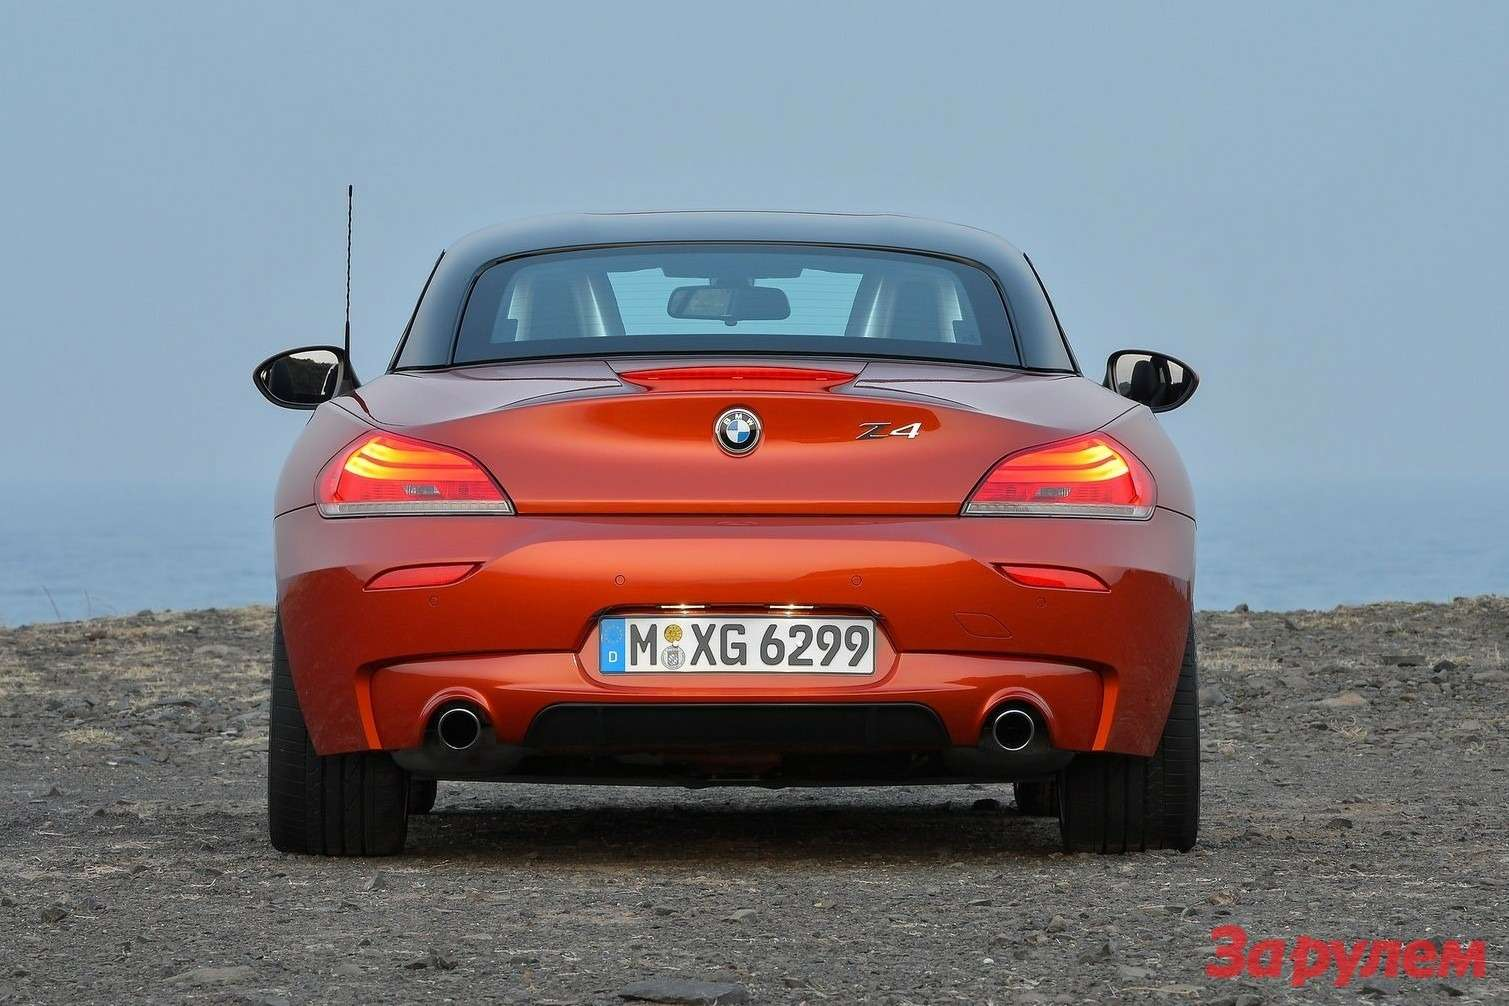 BMW-Z4_Roadster_2014_1600x1200_wallpaper_40